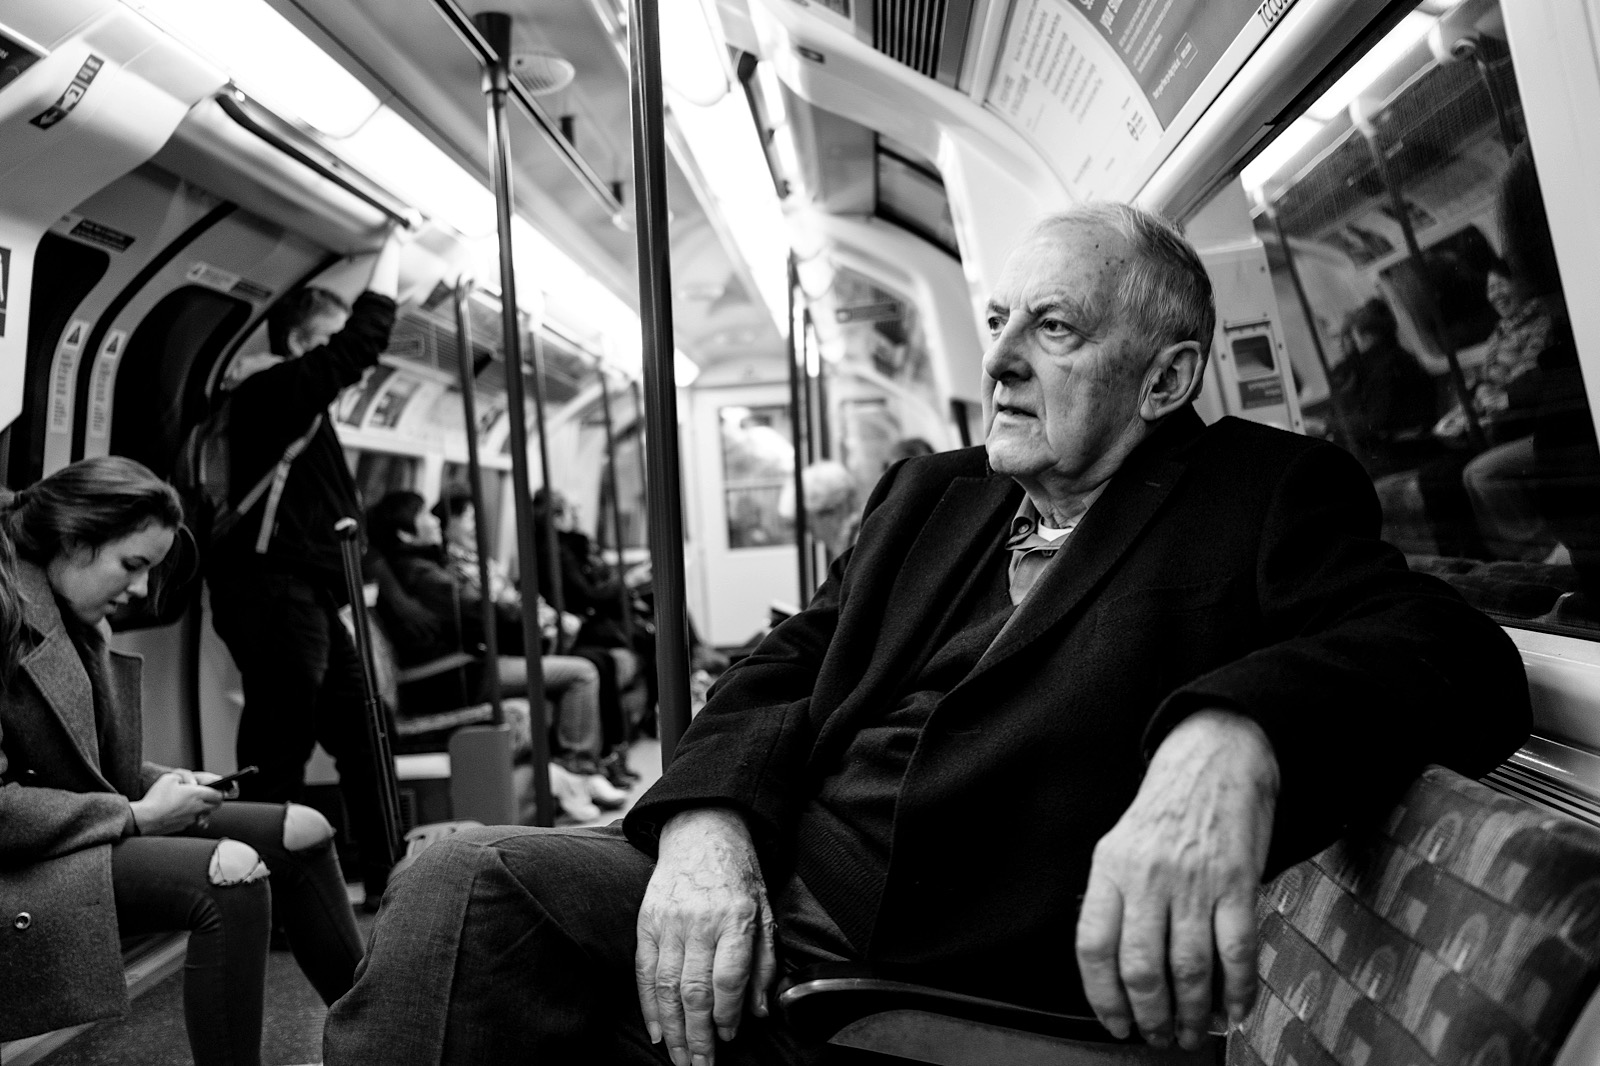 Candid Portrait of a old man sitting on a train